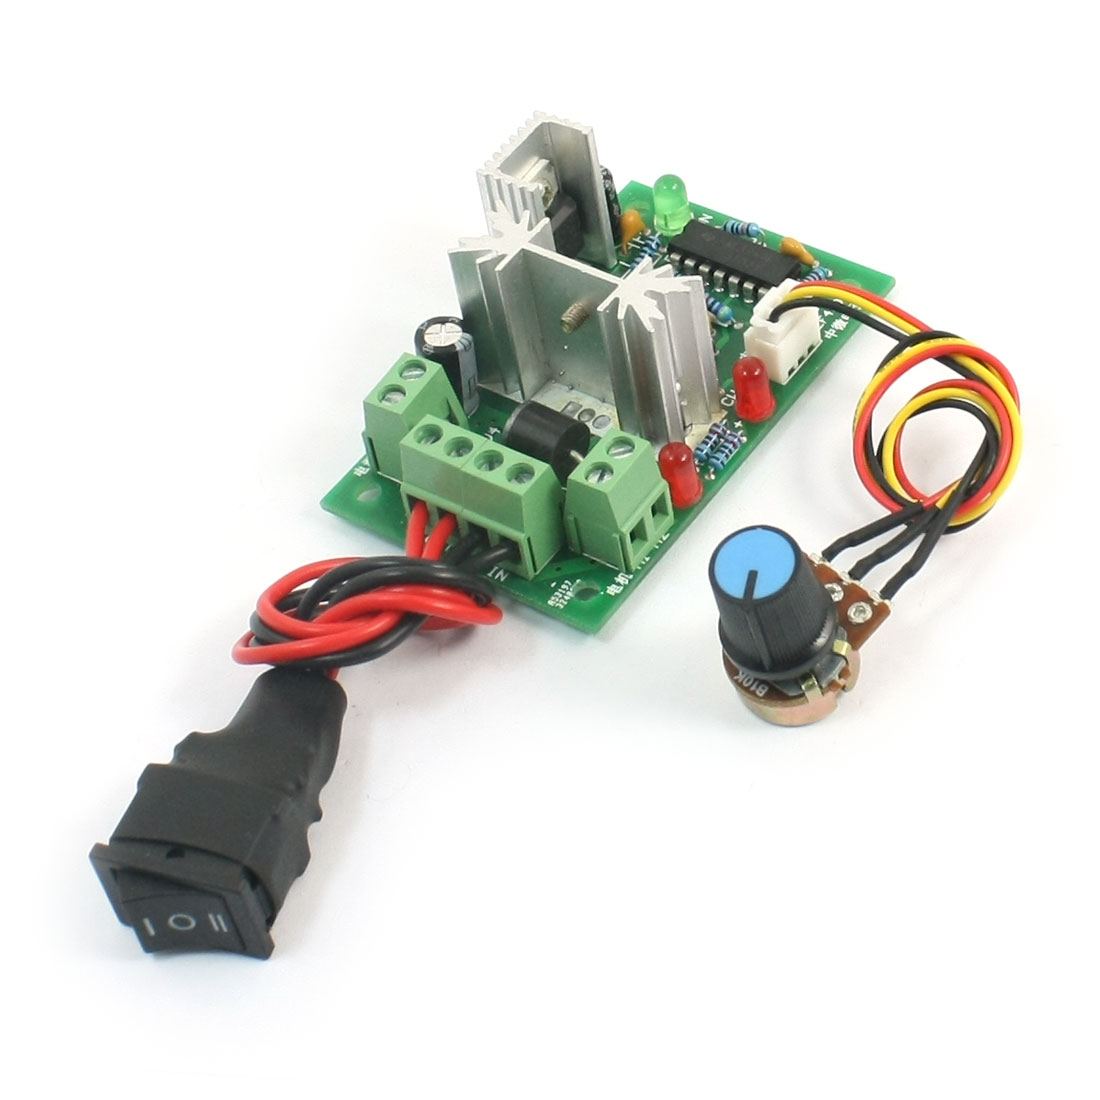 DC 10-36V 150W B10K Rotary Potentiometer 3P Rocker Switch Control CW Stop CCW PWM Motor Speed Controller Governor Module